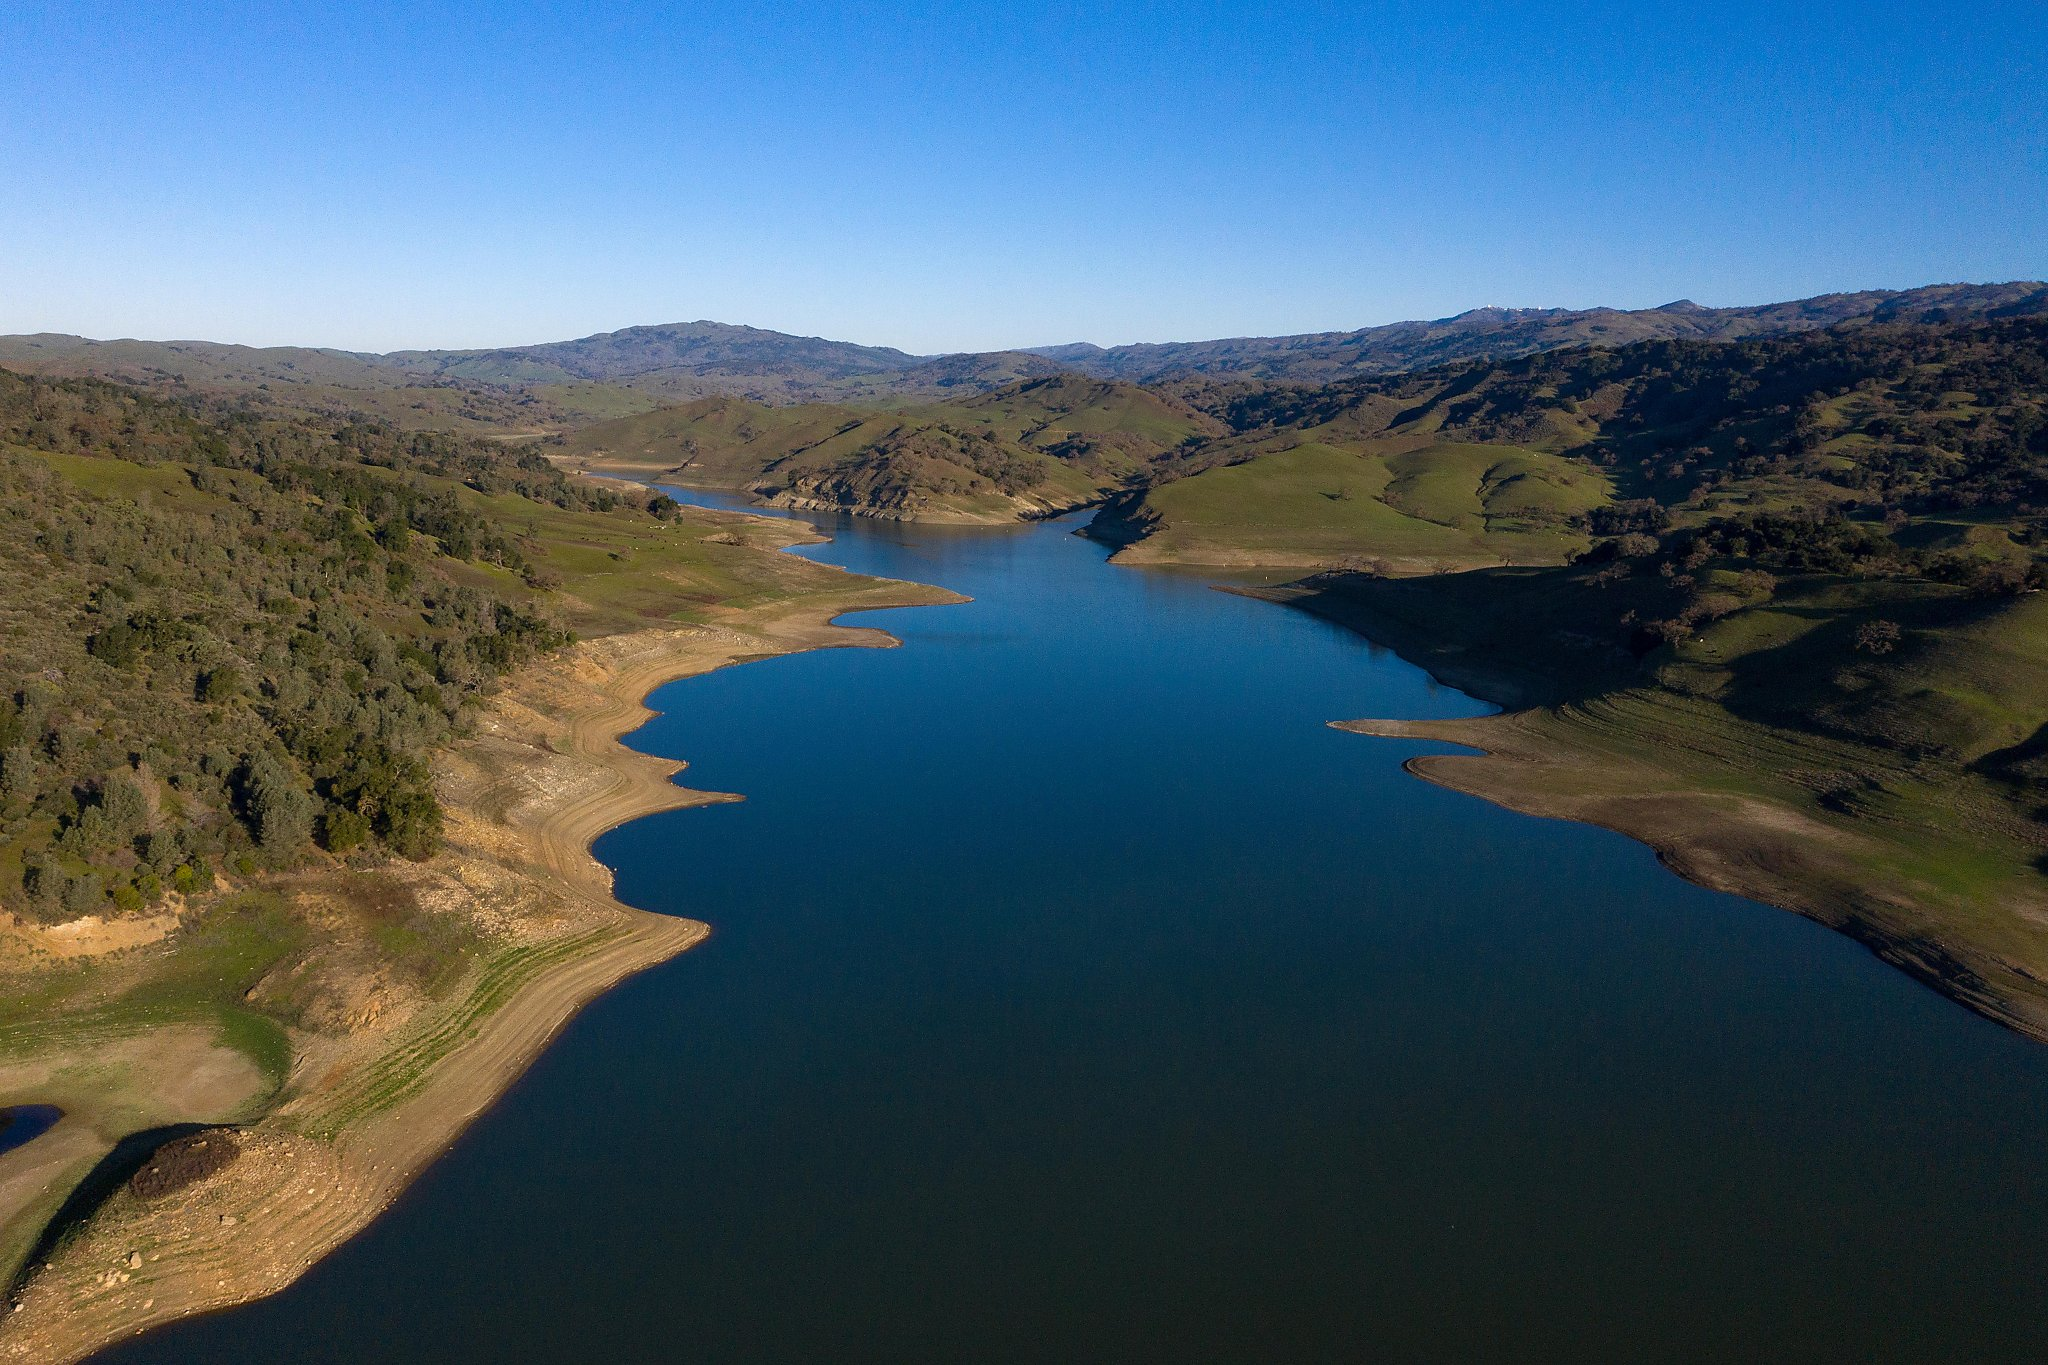 Mandatory water restrictions on the way for millions in the Bay Area